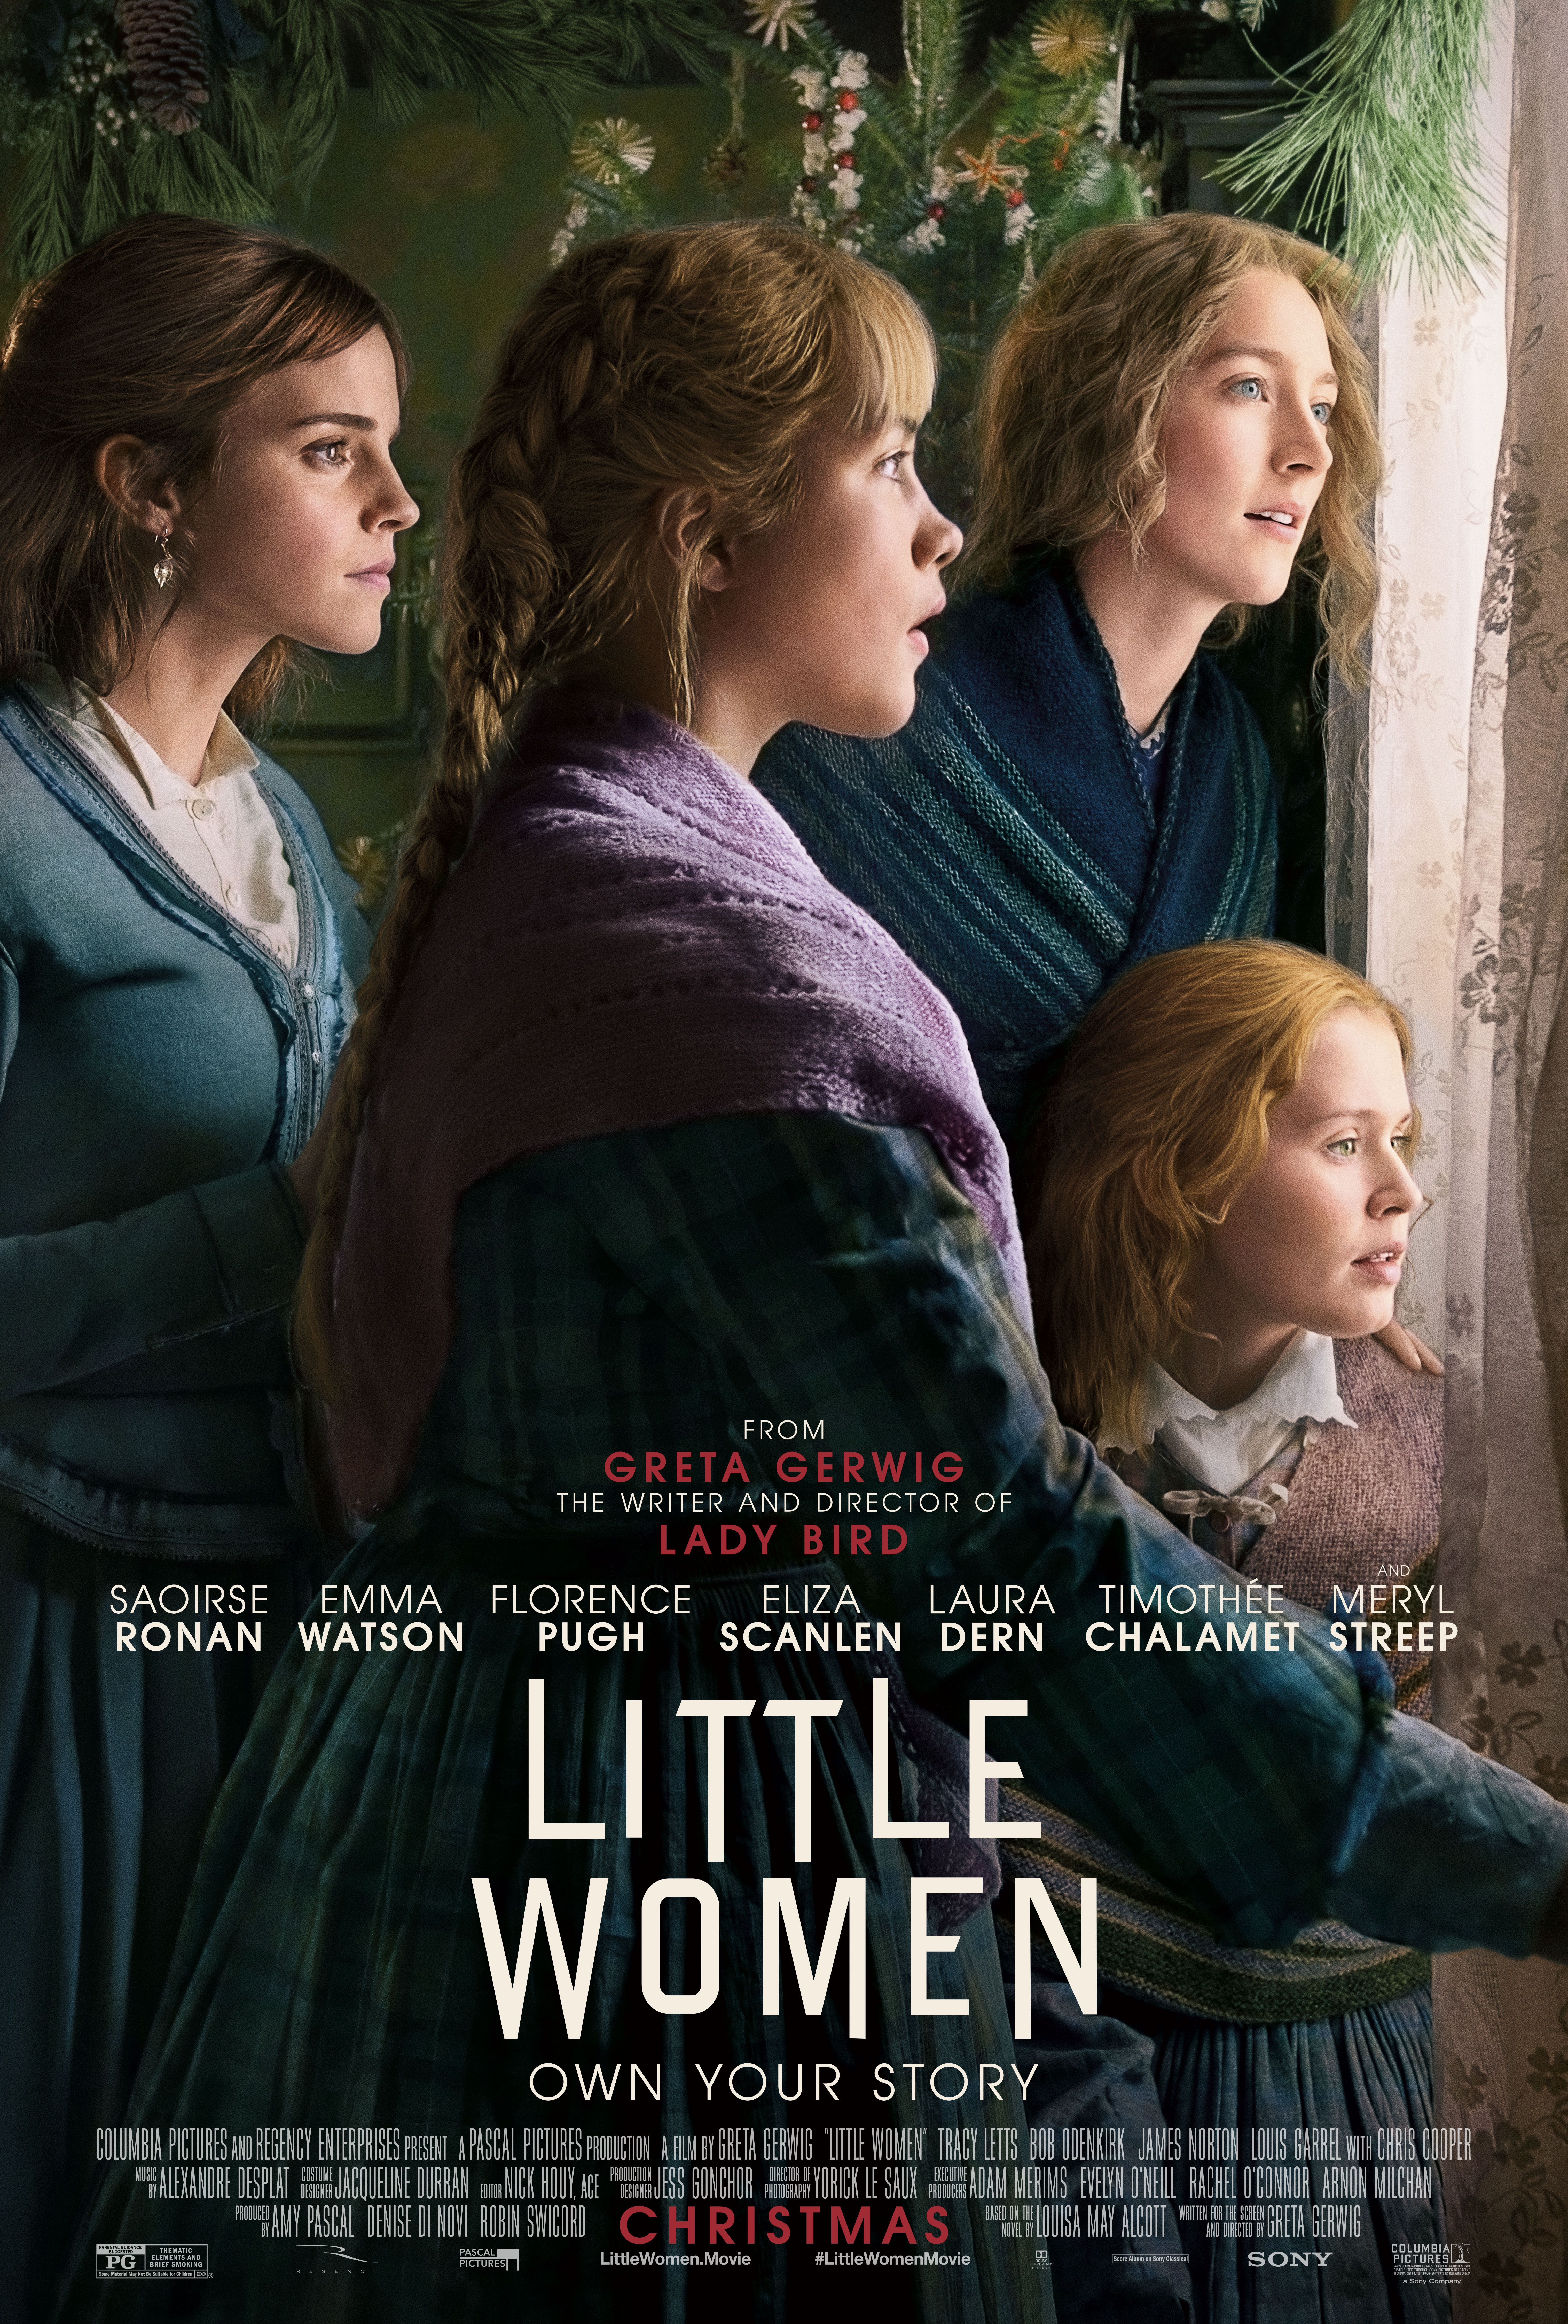 Little Women (2019) Reviews in 2020 (With images) Woman